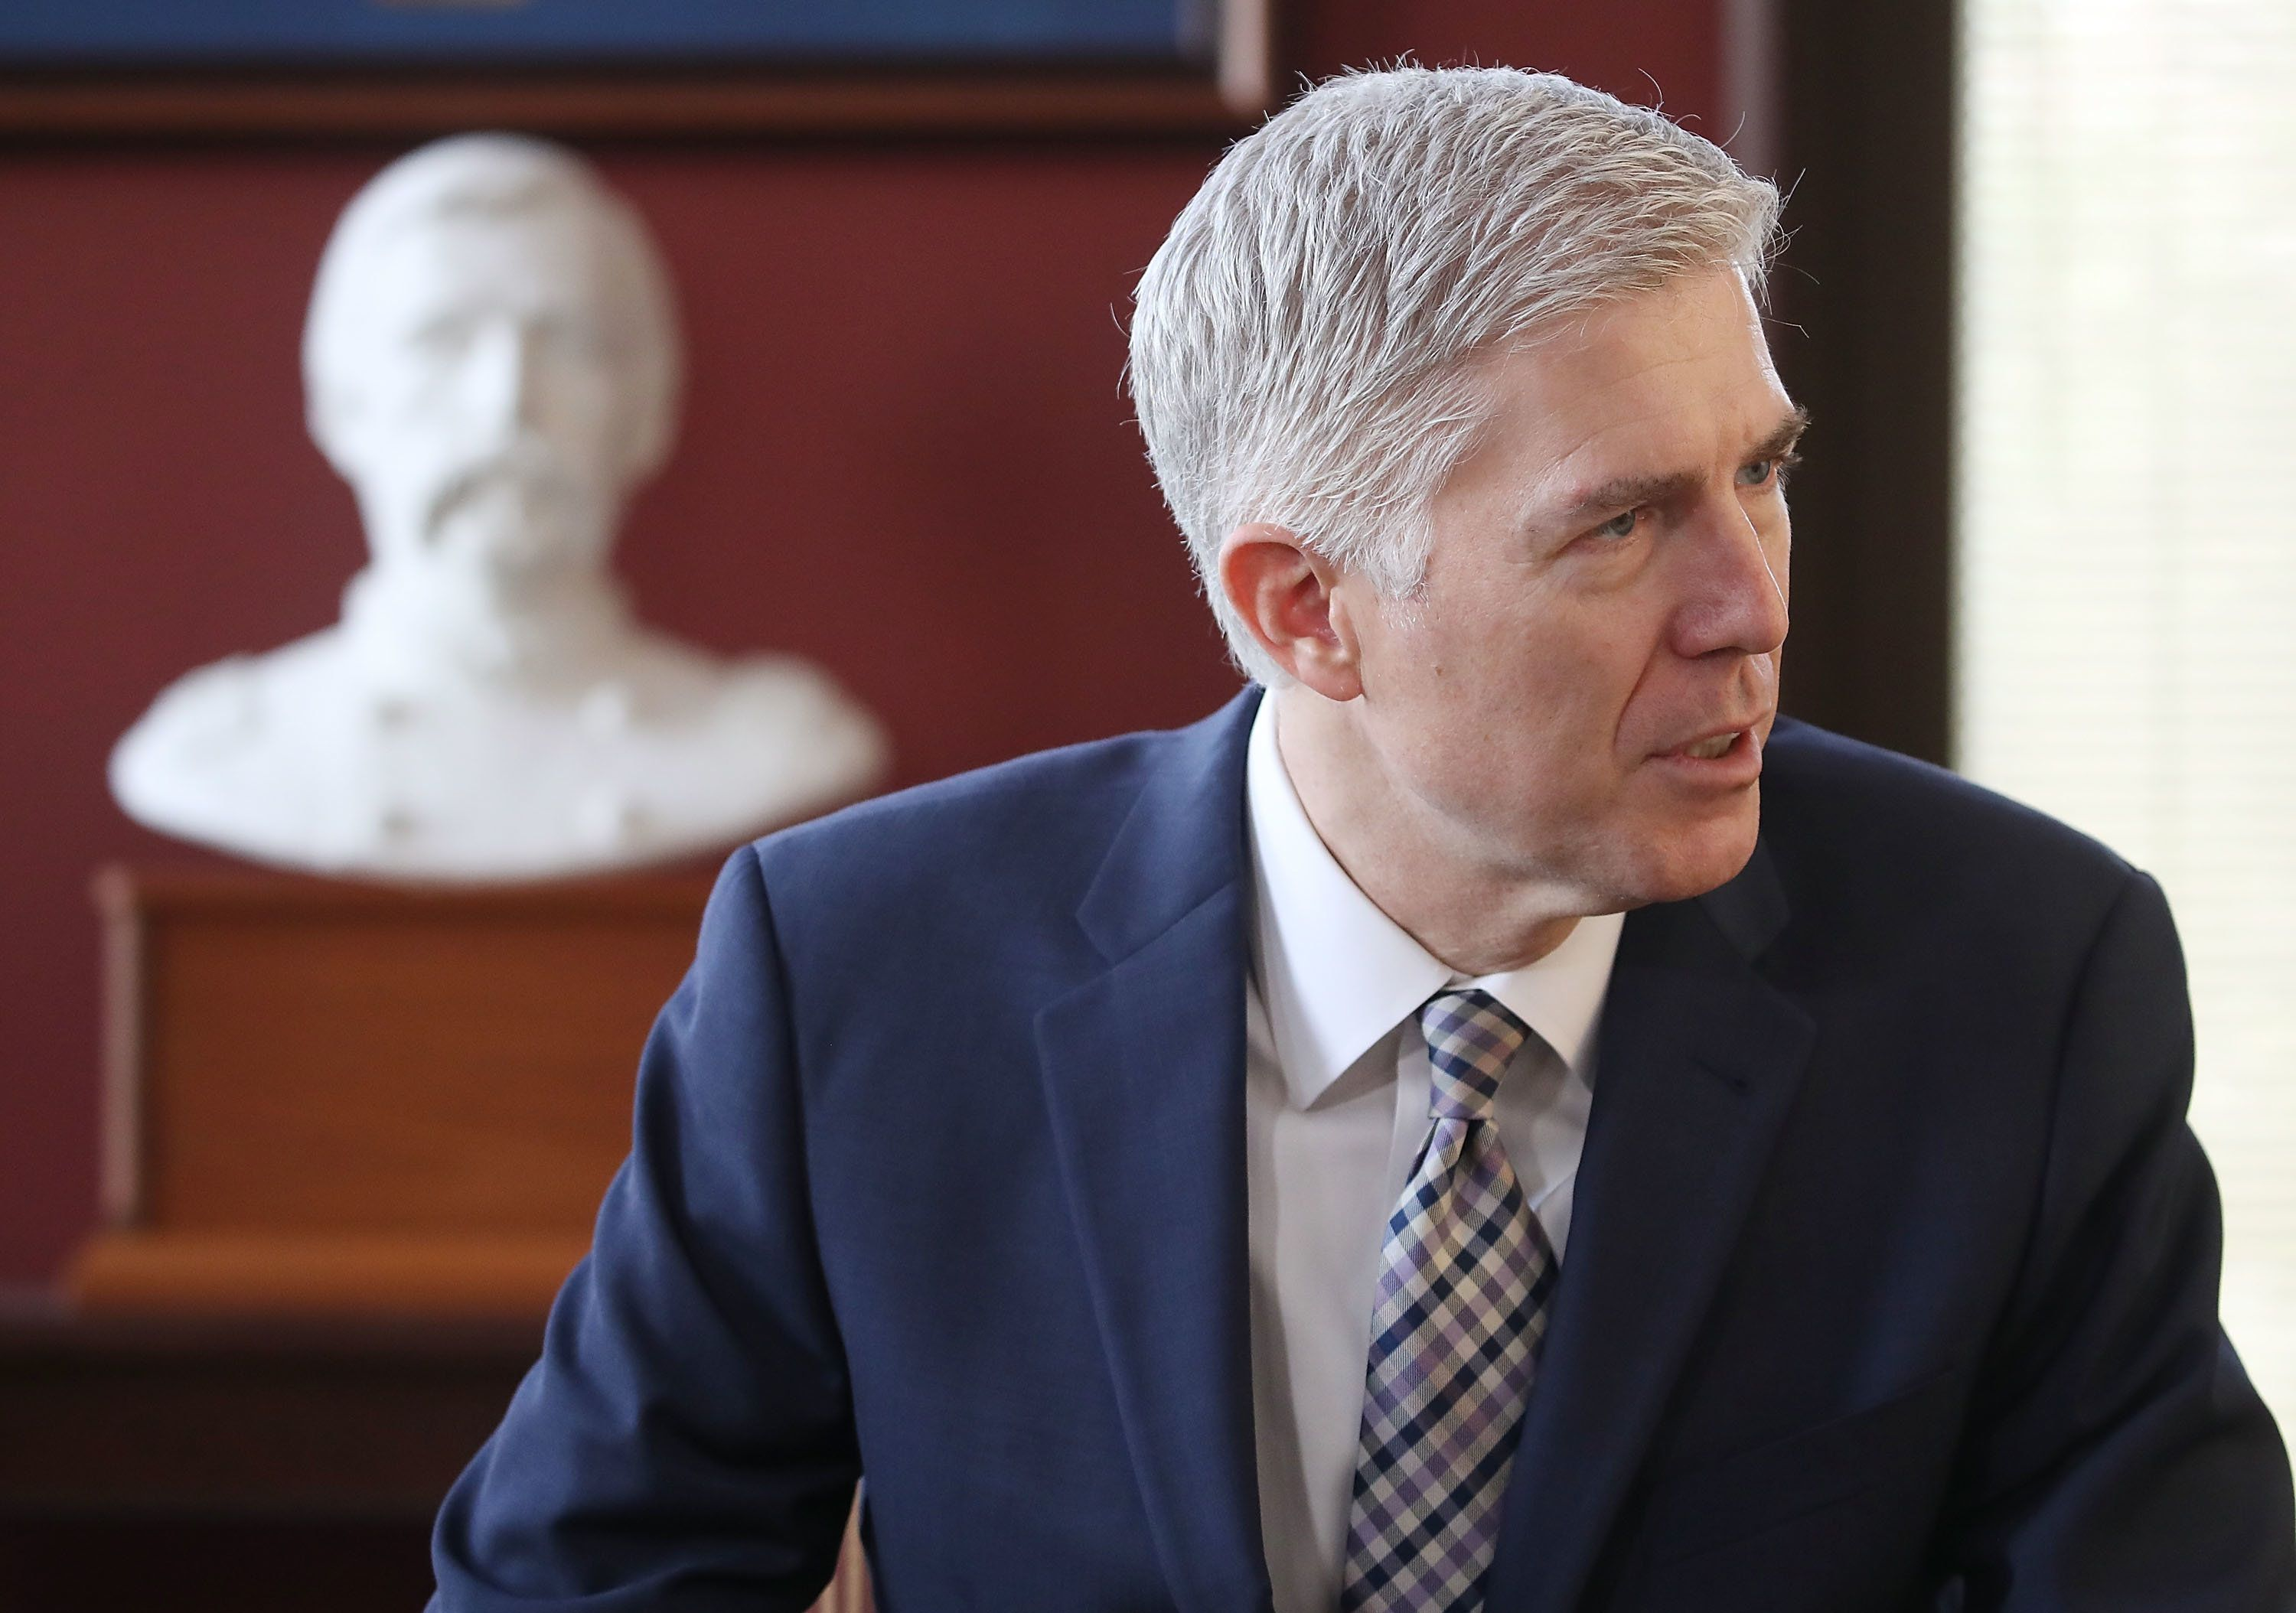 WASHINGTON, DC - MARCH 01:  Supreme Court nominee Judge Neil Gorsuch meets with Sen. Angus King (I-ME) in his office on Capitol Hill March 1, 2017 in Washington, DC. President Donald Trump nominated Judge Gorsuch to the Supreme Court to fill the seat that was left vacant with the death of Associate Justice Antonin Scalia in February 2016.  (Photo by Mark Wilson/Getty Images)